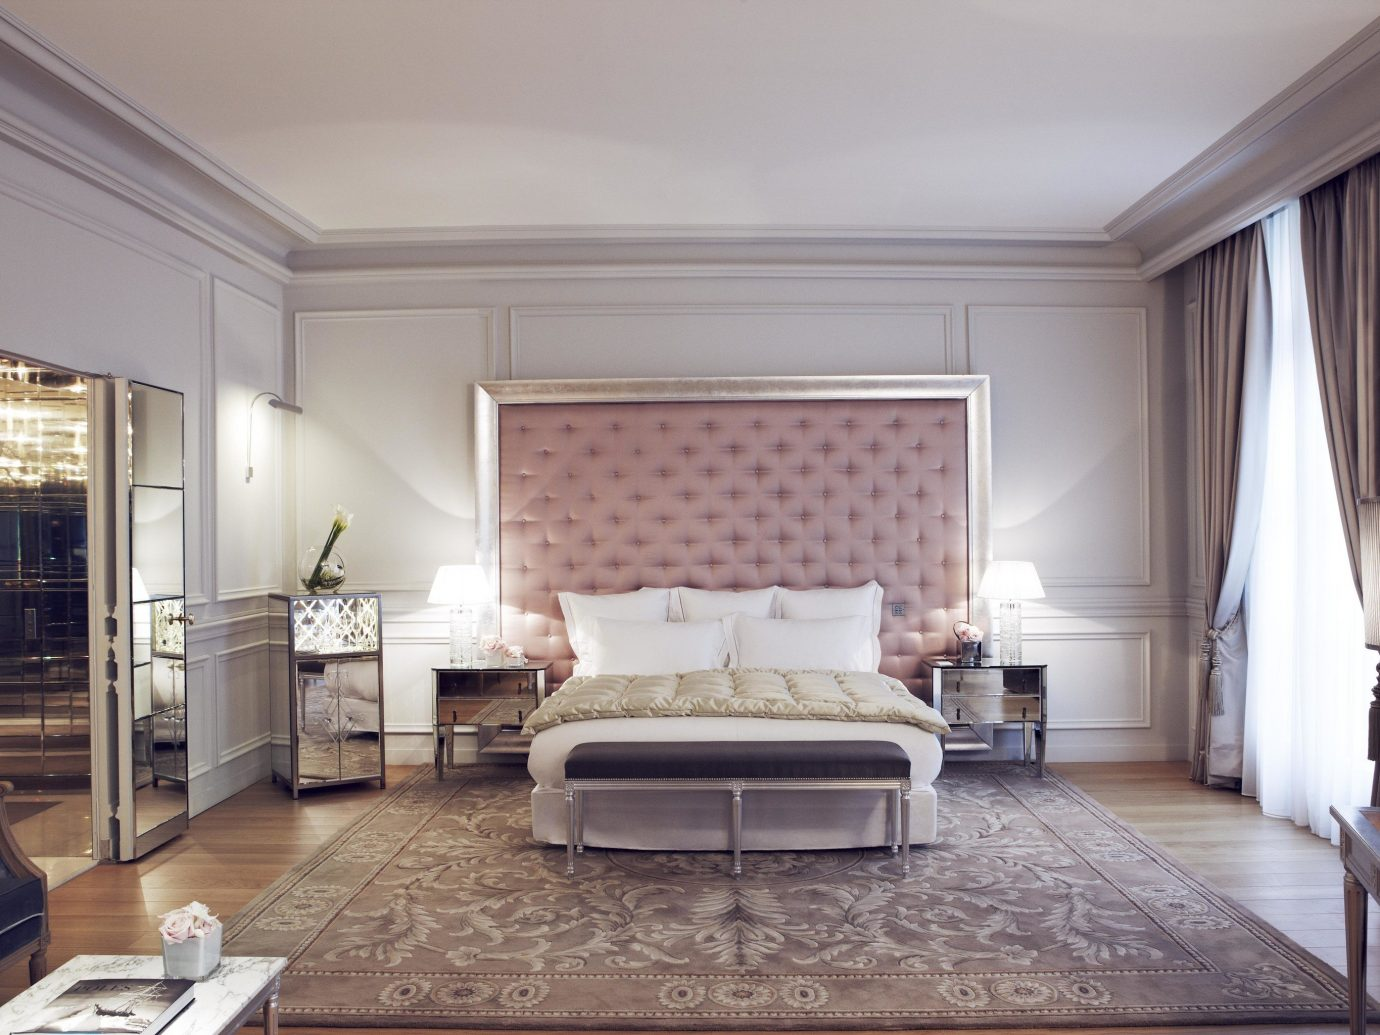 France Hotels Paris Trip Ideas indoor wall floor room property ceiling Living living room Bedroom estate Suite interior design real estate hardwood home condominium mansion Design furniture apartment